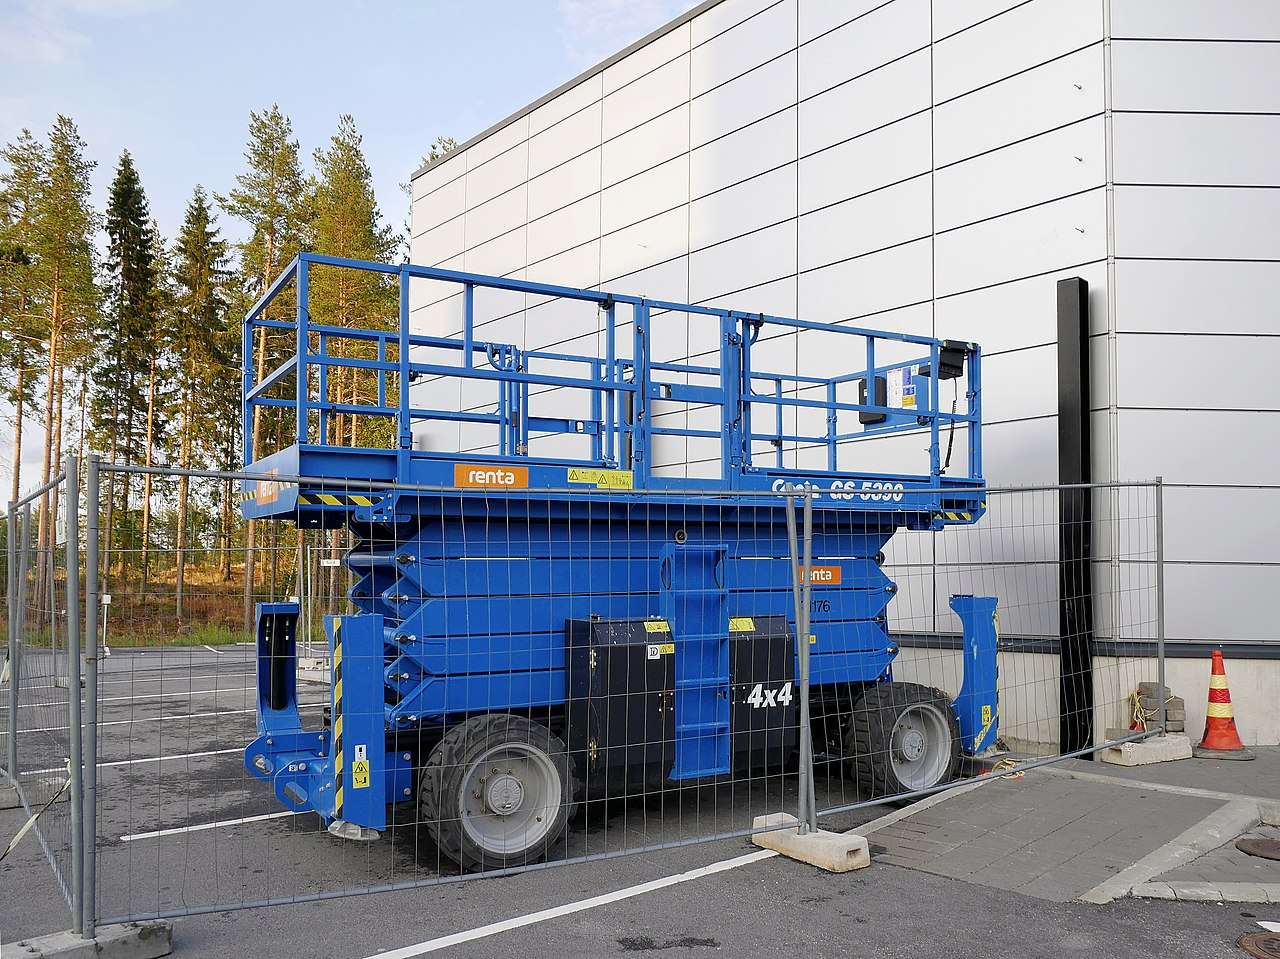 File:Genie GS-5390 scissor lift 20180827 jpg - Wikimedia Commons